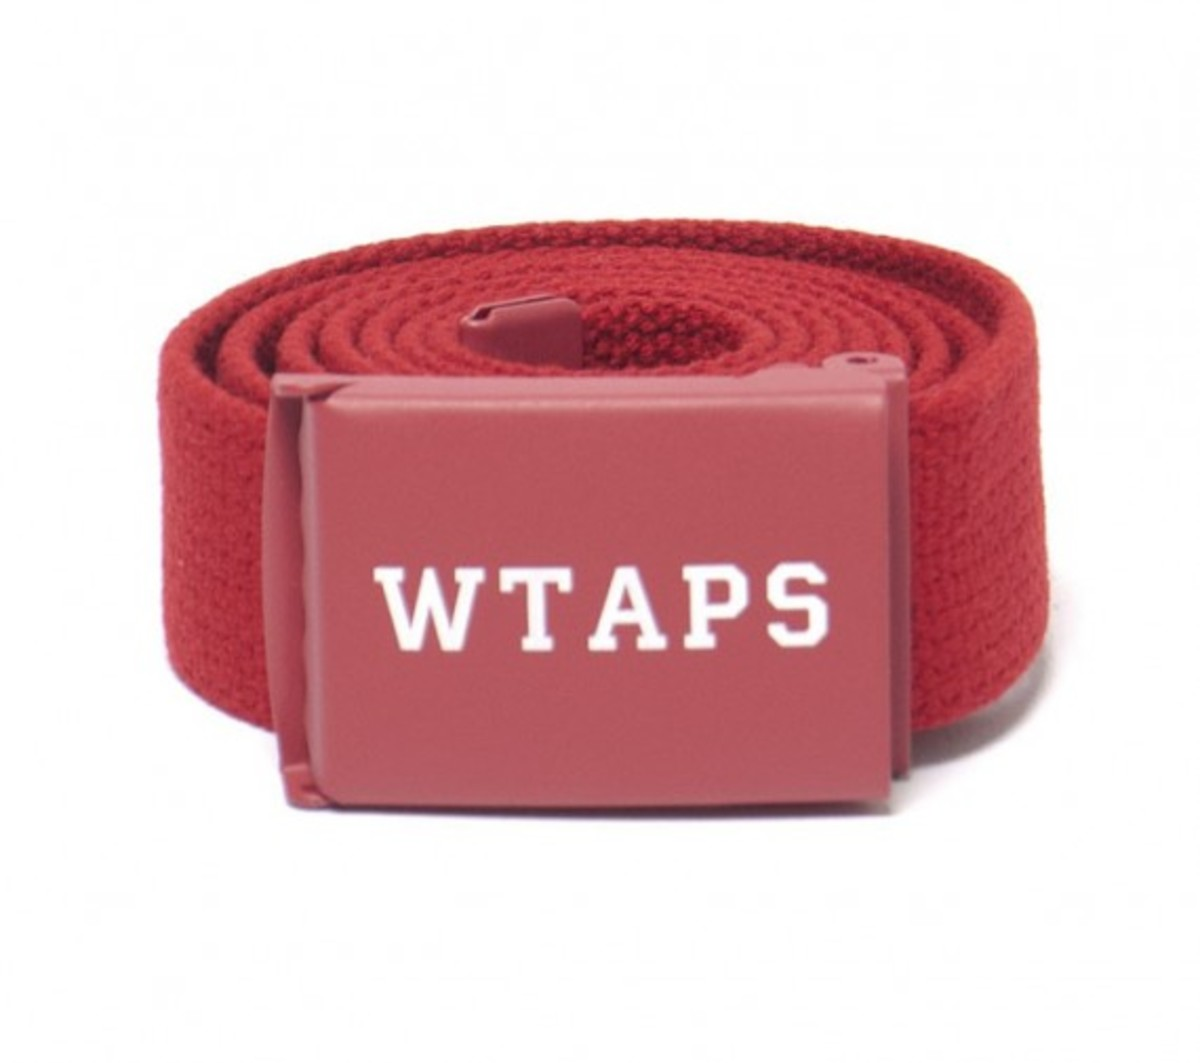 wtaps-spring-summer-2012-august-delivery-14